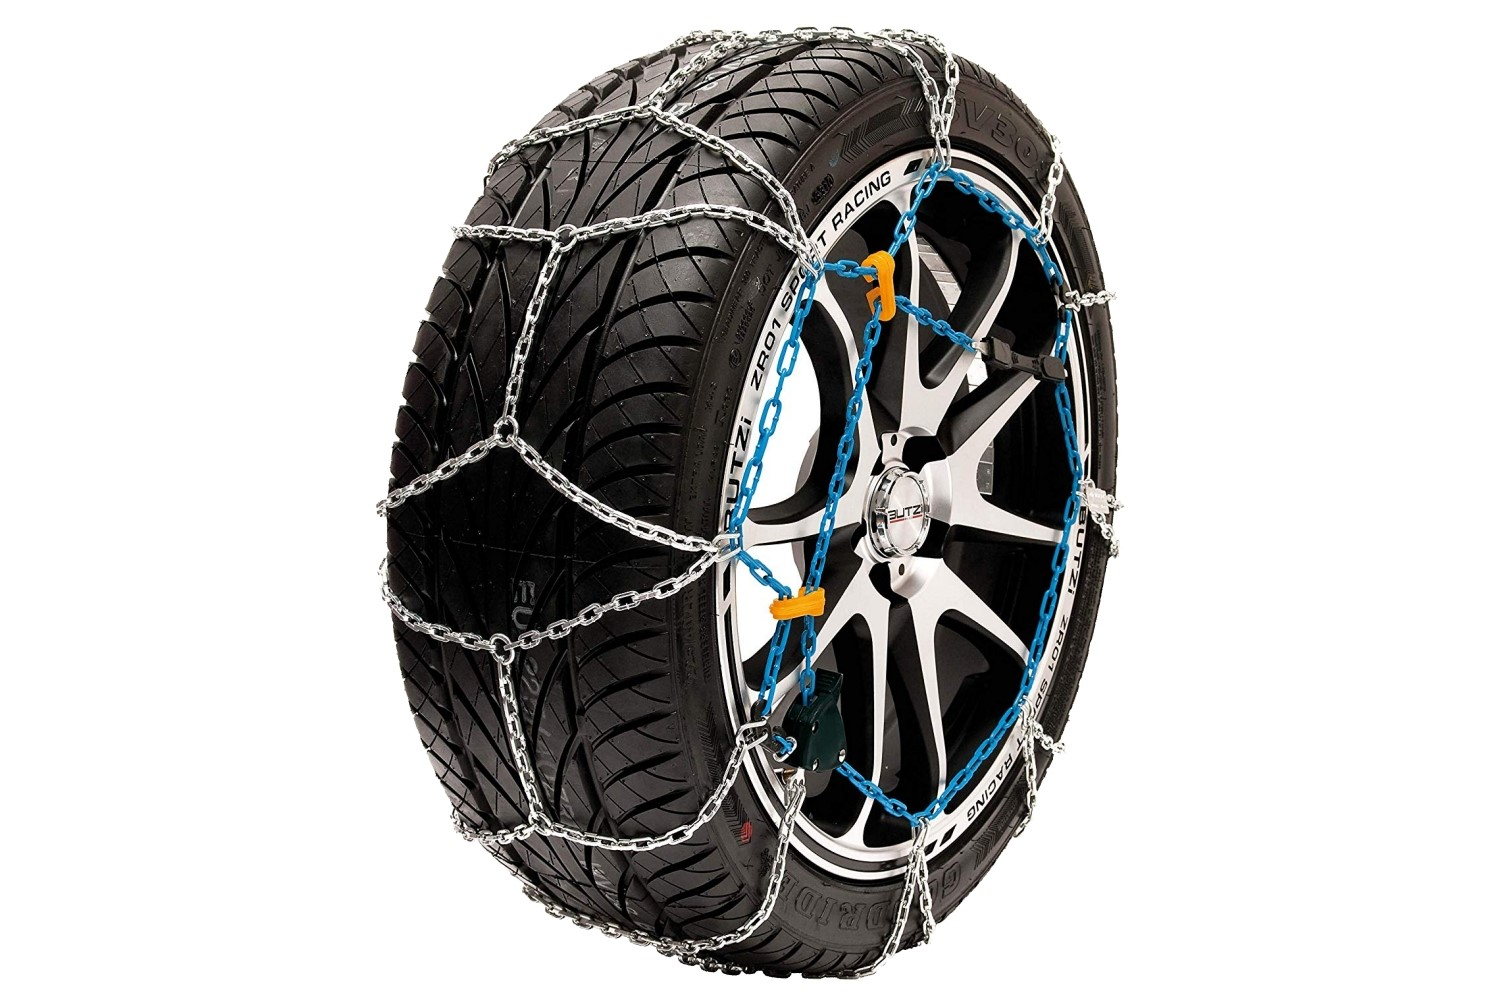 Snow Chains Husky Butzi 100 2 pieces - 245/45 R16